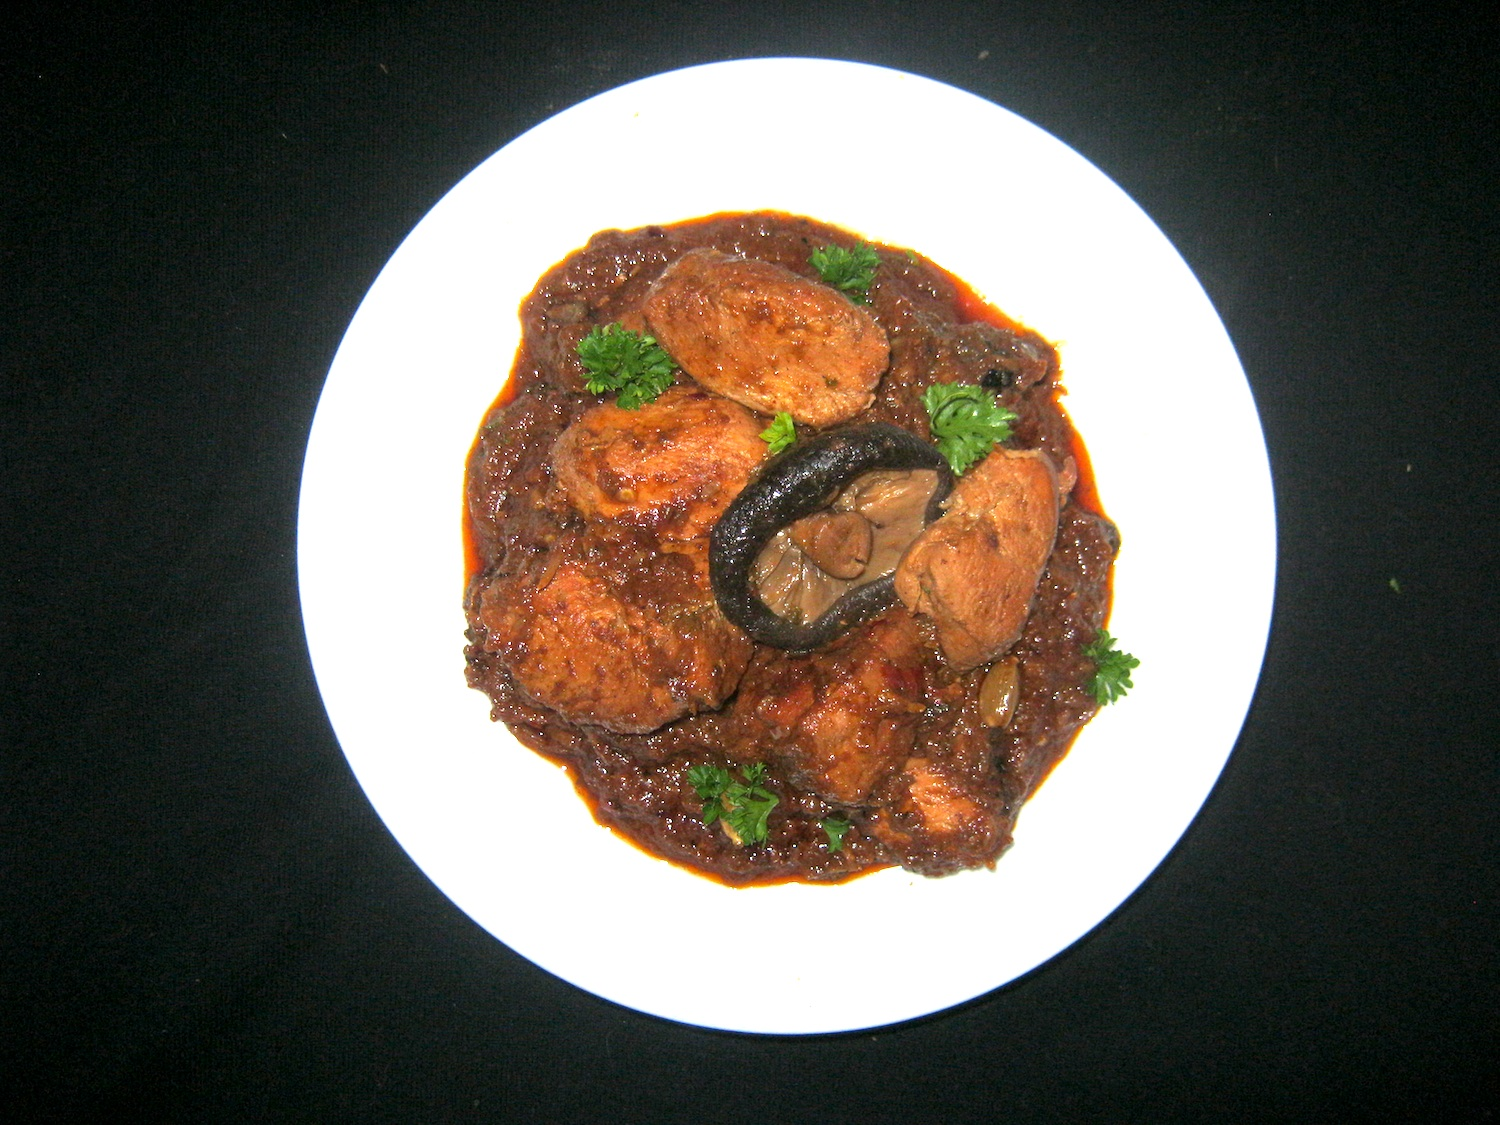 Chicken Rogan Josh with shiitake mushrooms served in a white bowl